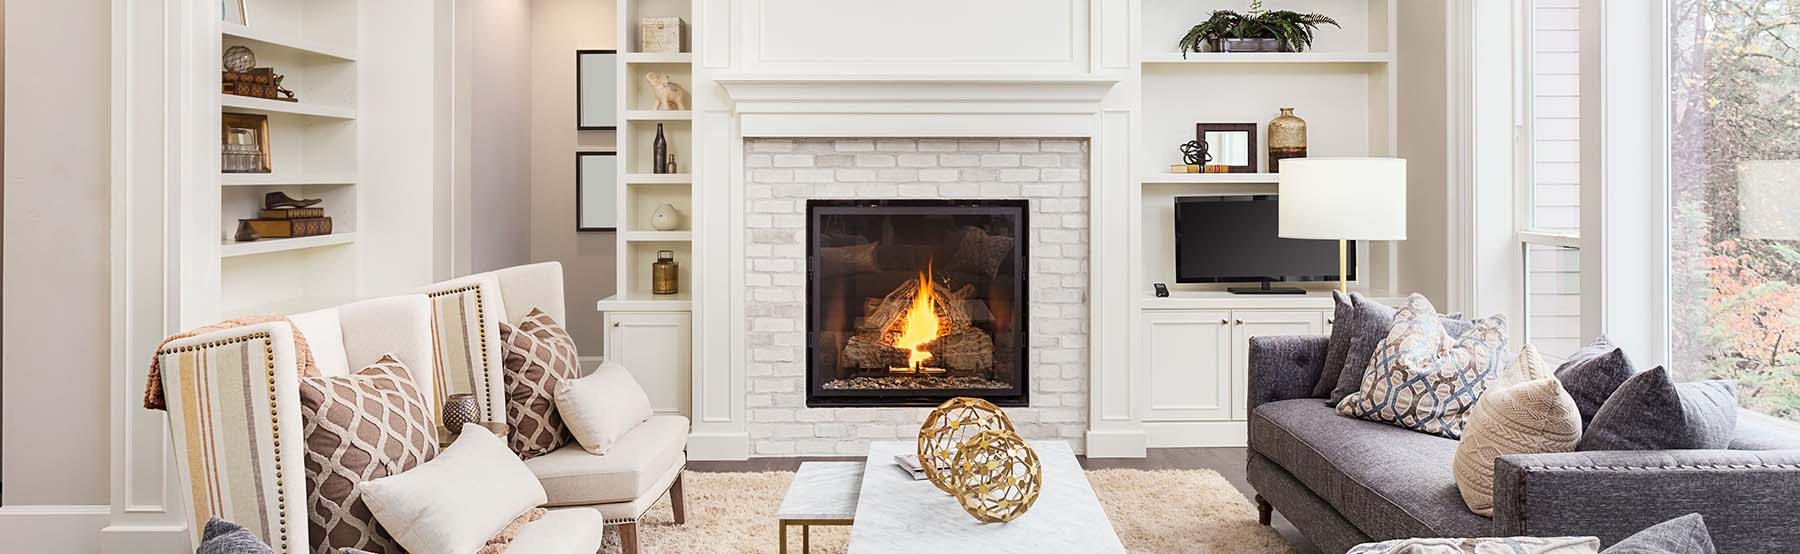 Painted White brick fireplace with built ins